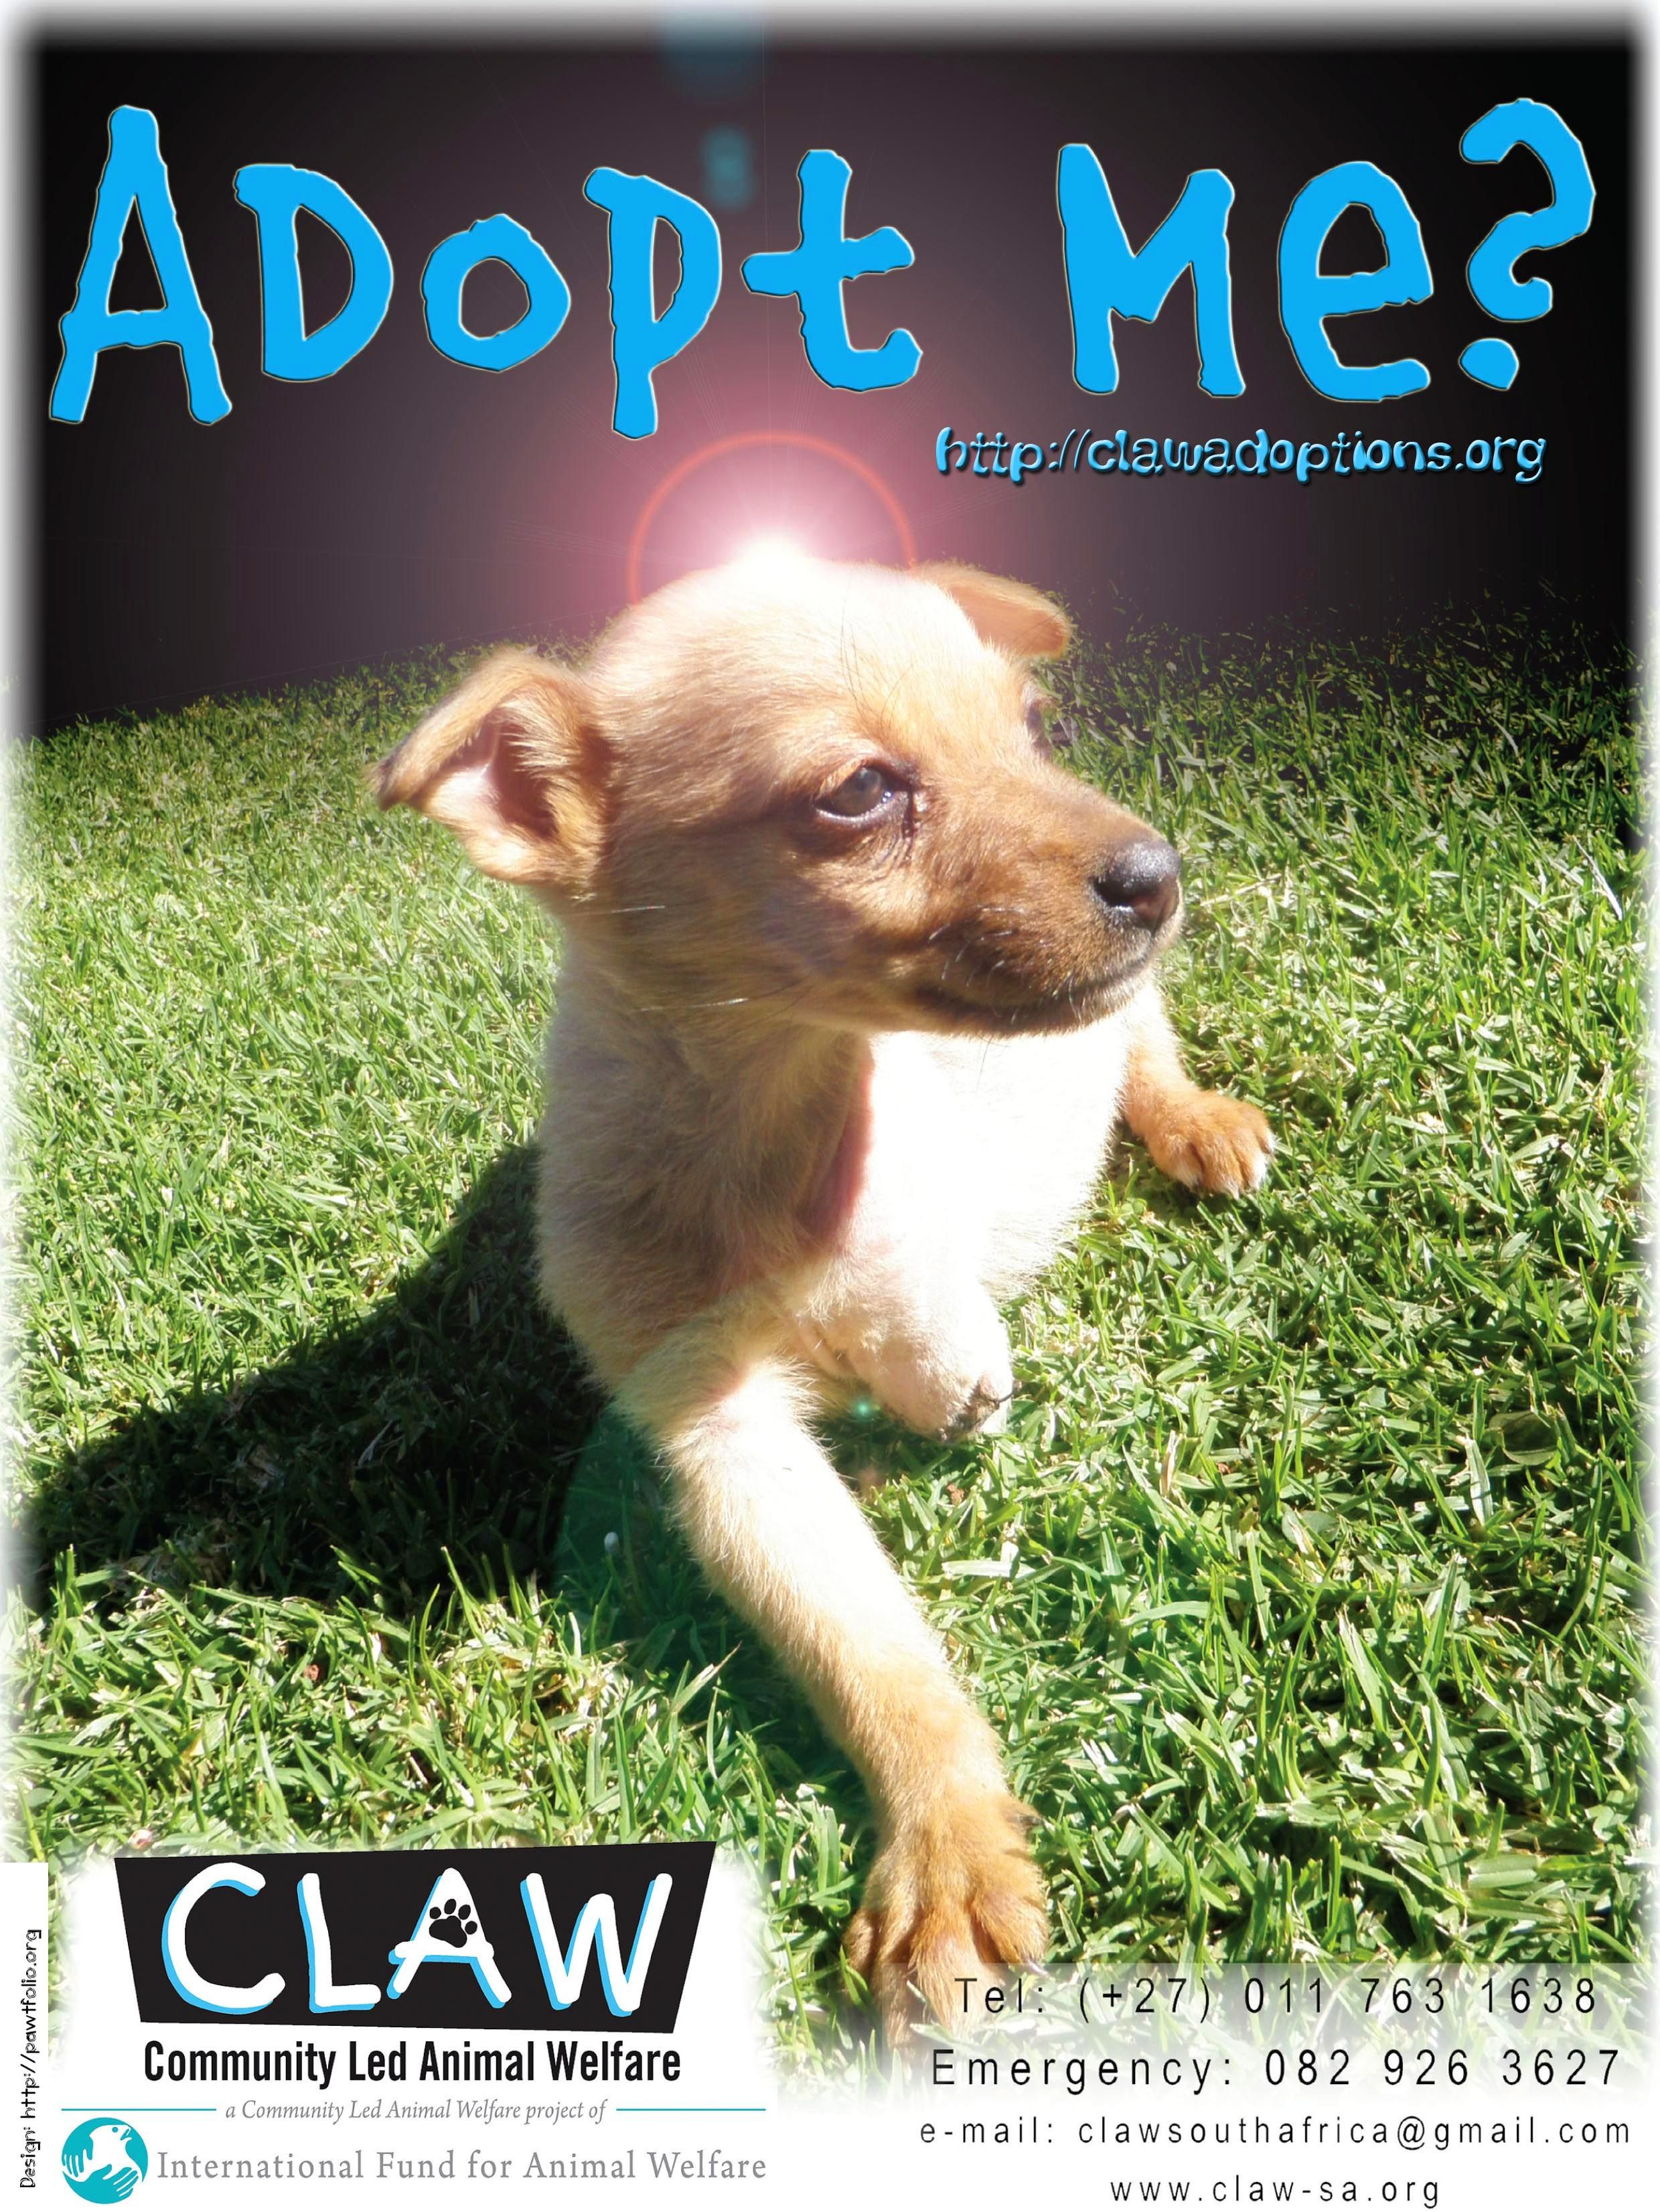 Adopt Me? (With images) Dog rocks, Dogs, Adoption